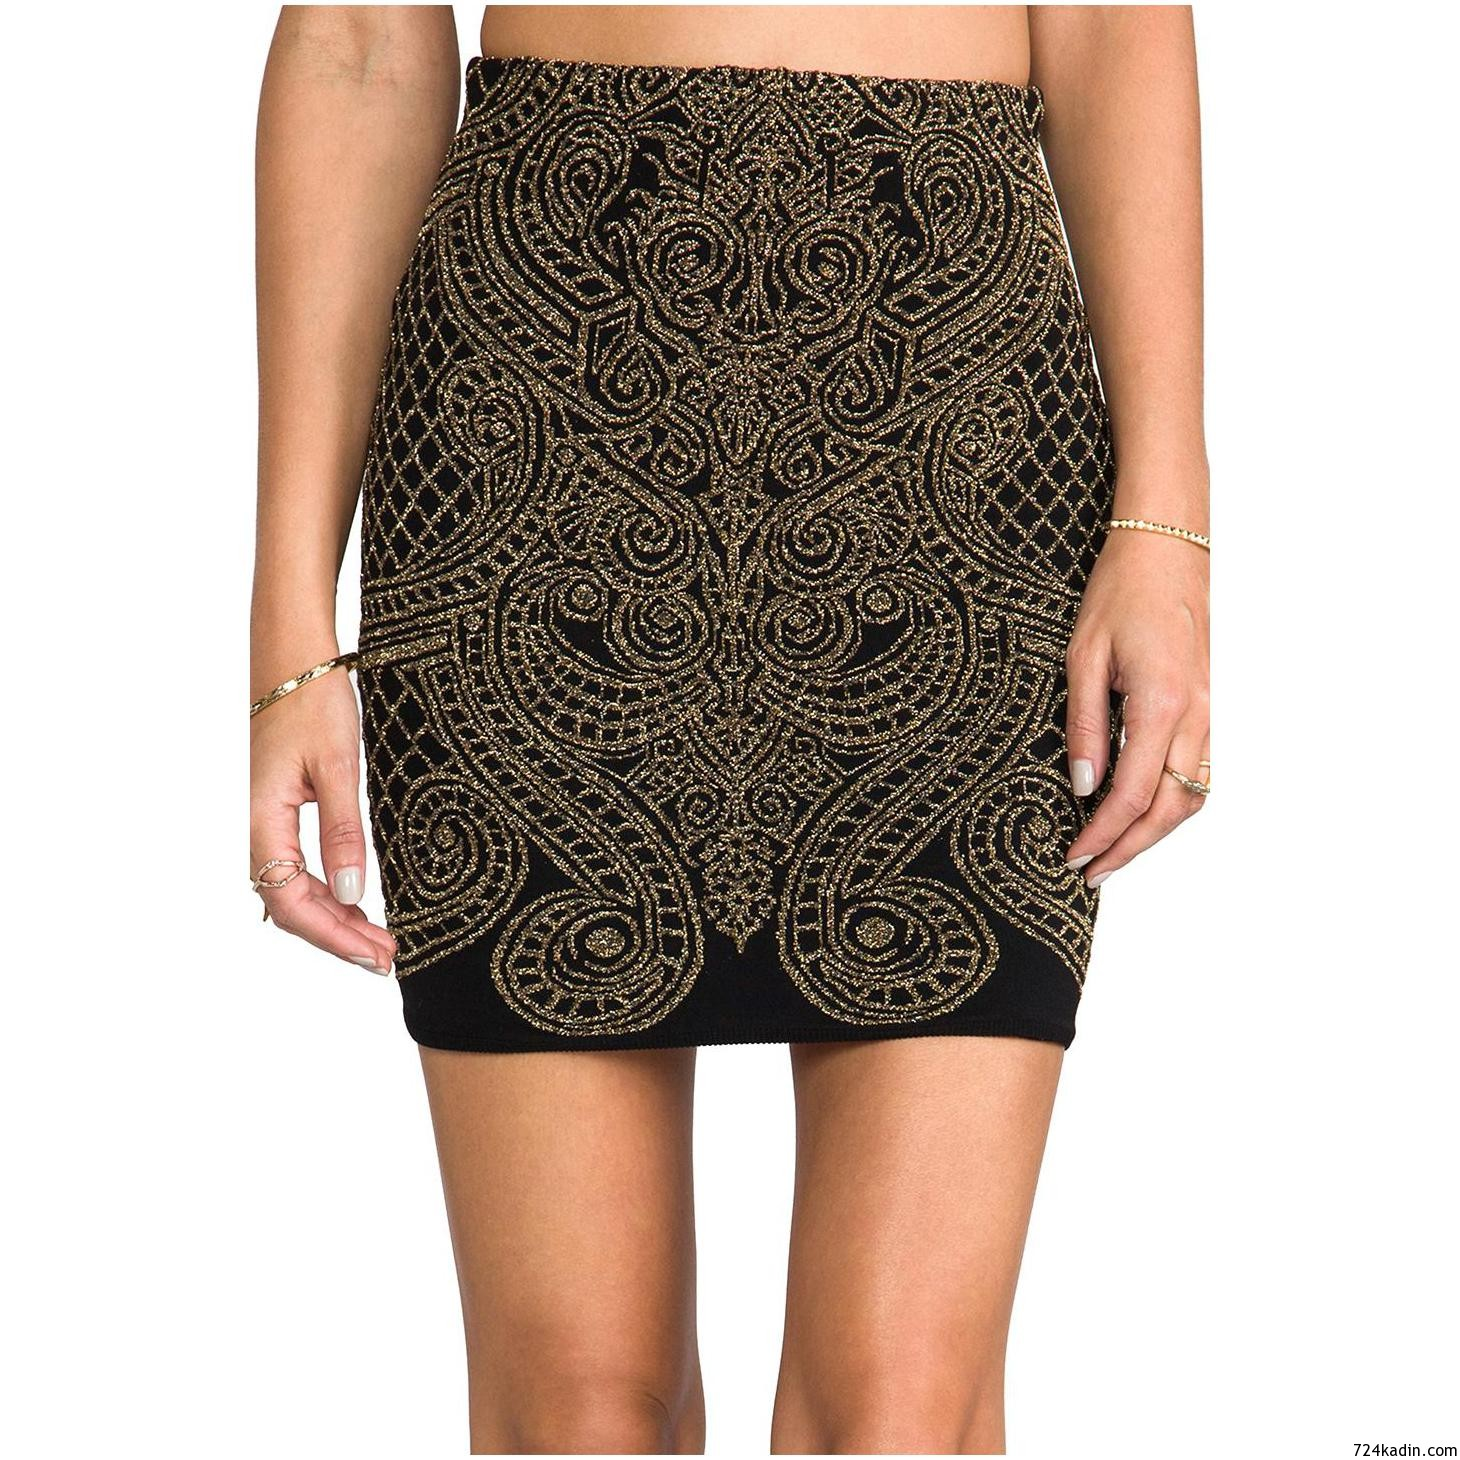 1500-RVN-Metallic-Baroque-Jacquard-High-Waisted-Skirt-for-Women-4